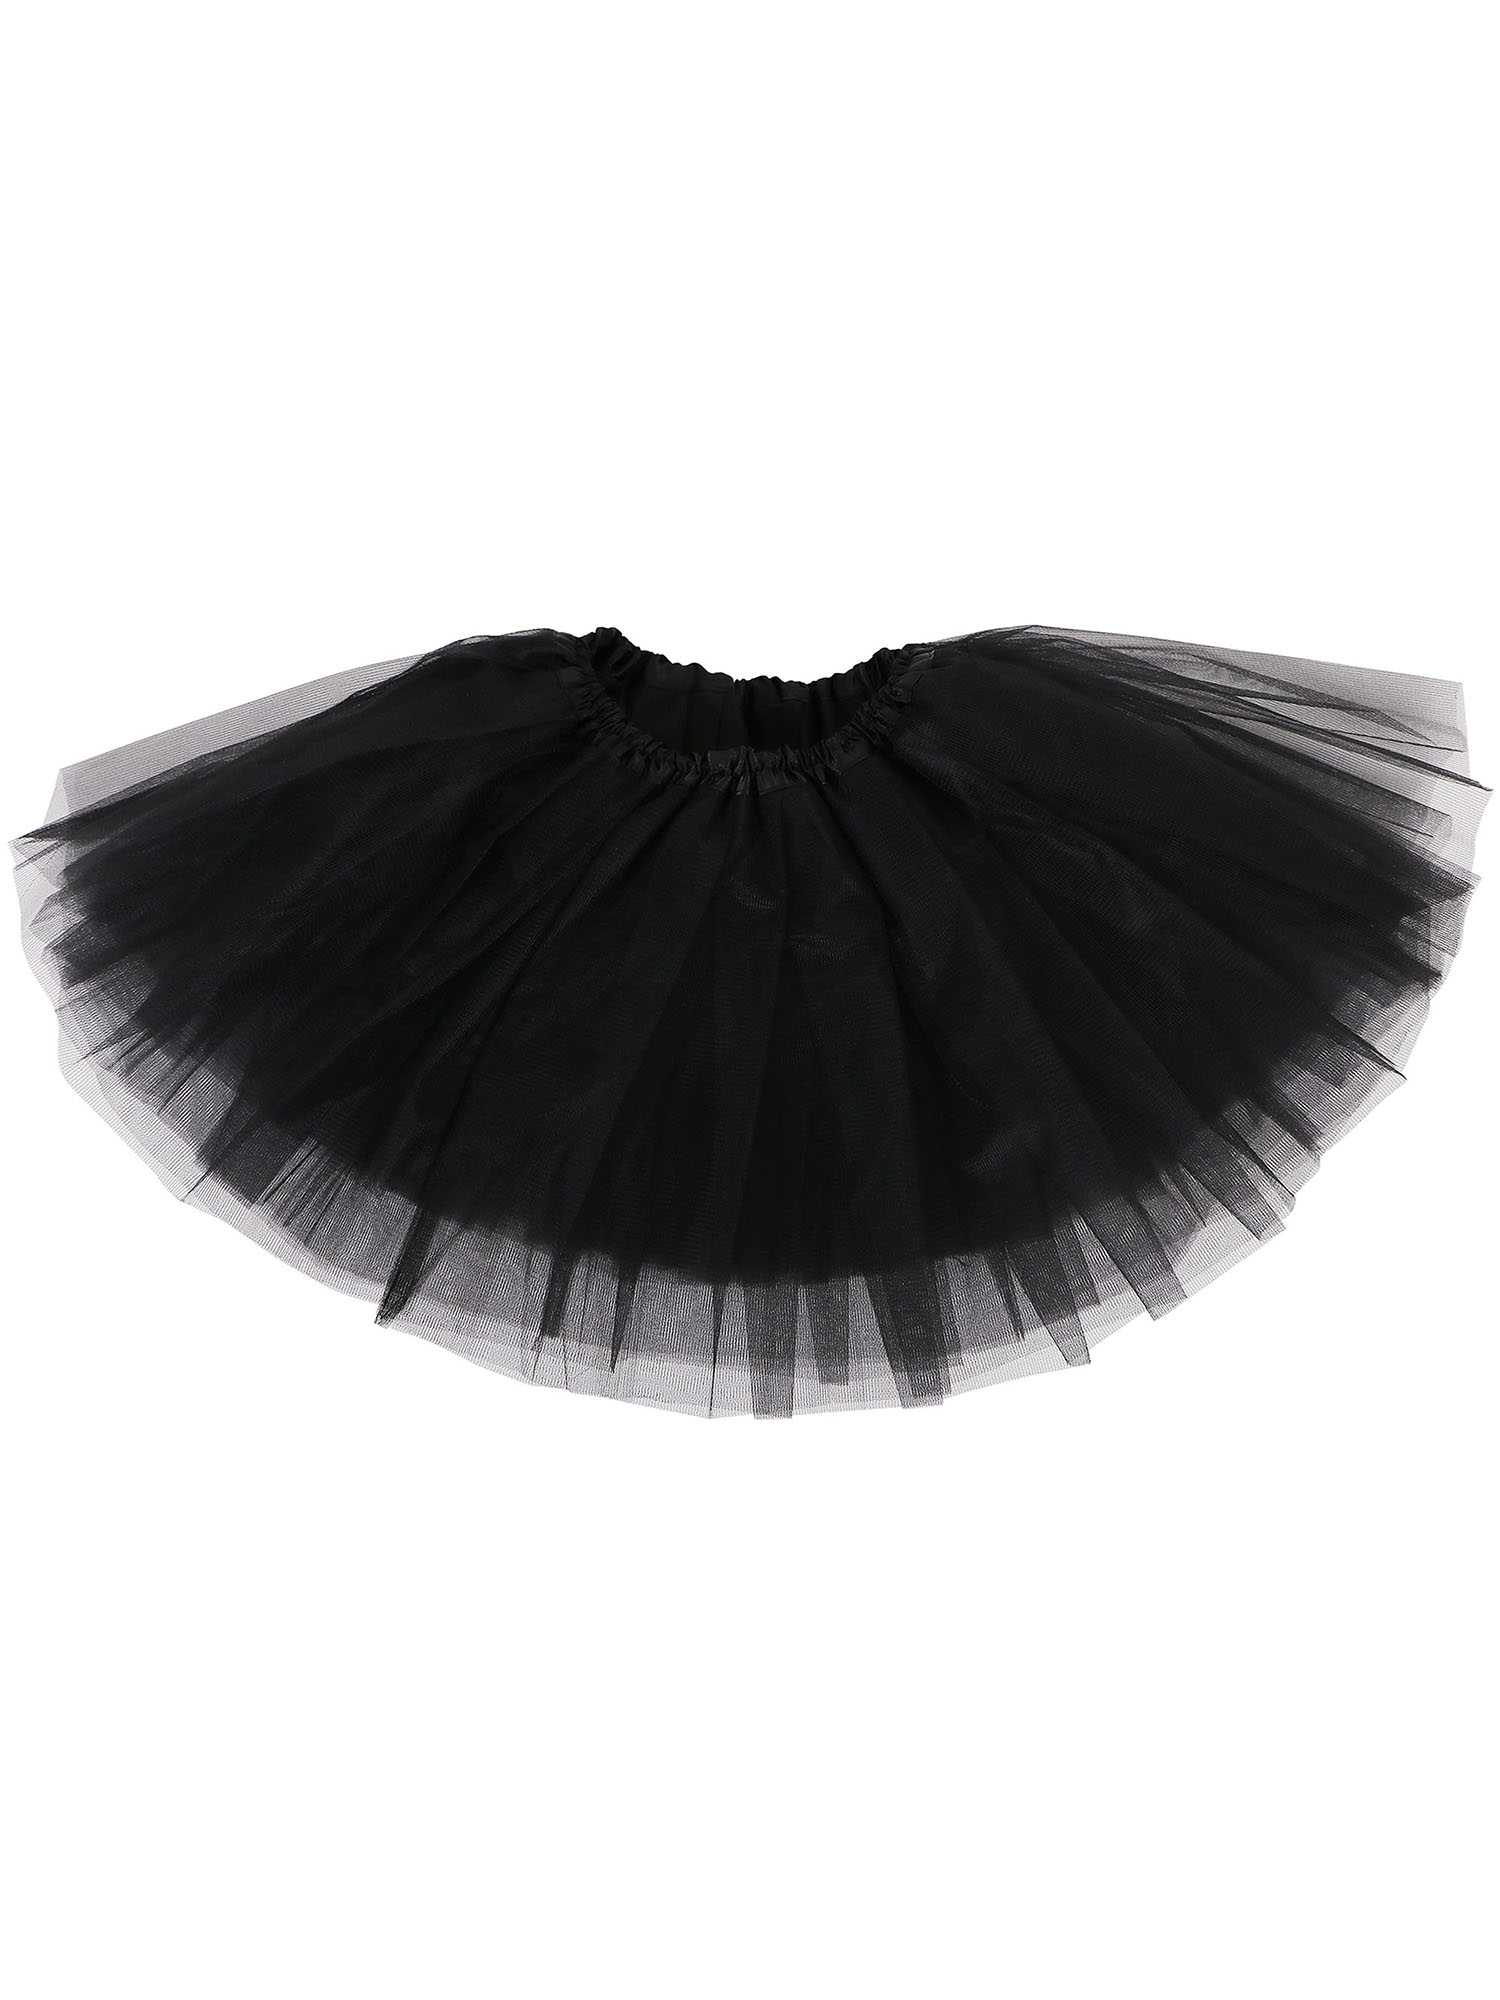 Baby Cute Tulle Tutu Skirt for Dress Up & Fairy Costumes, Black